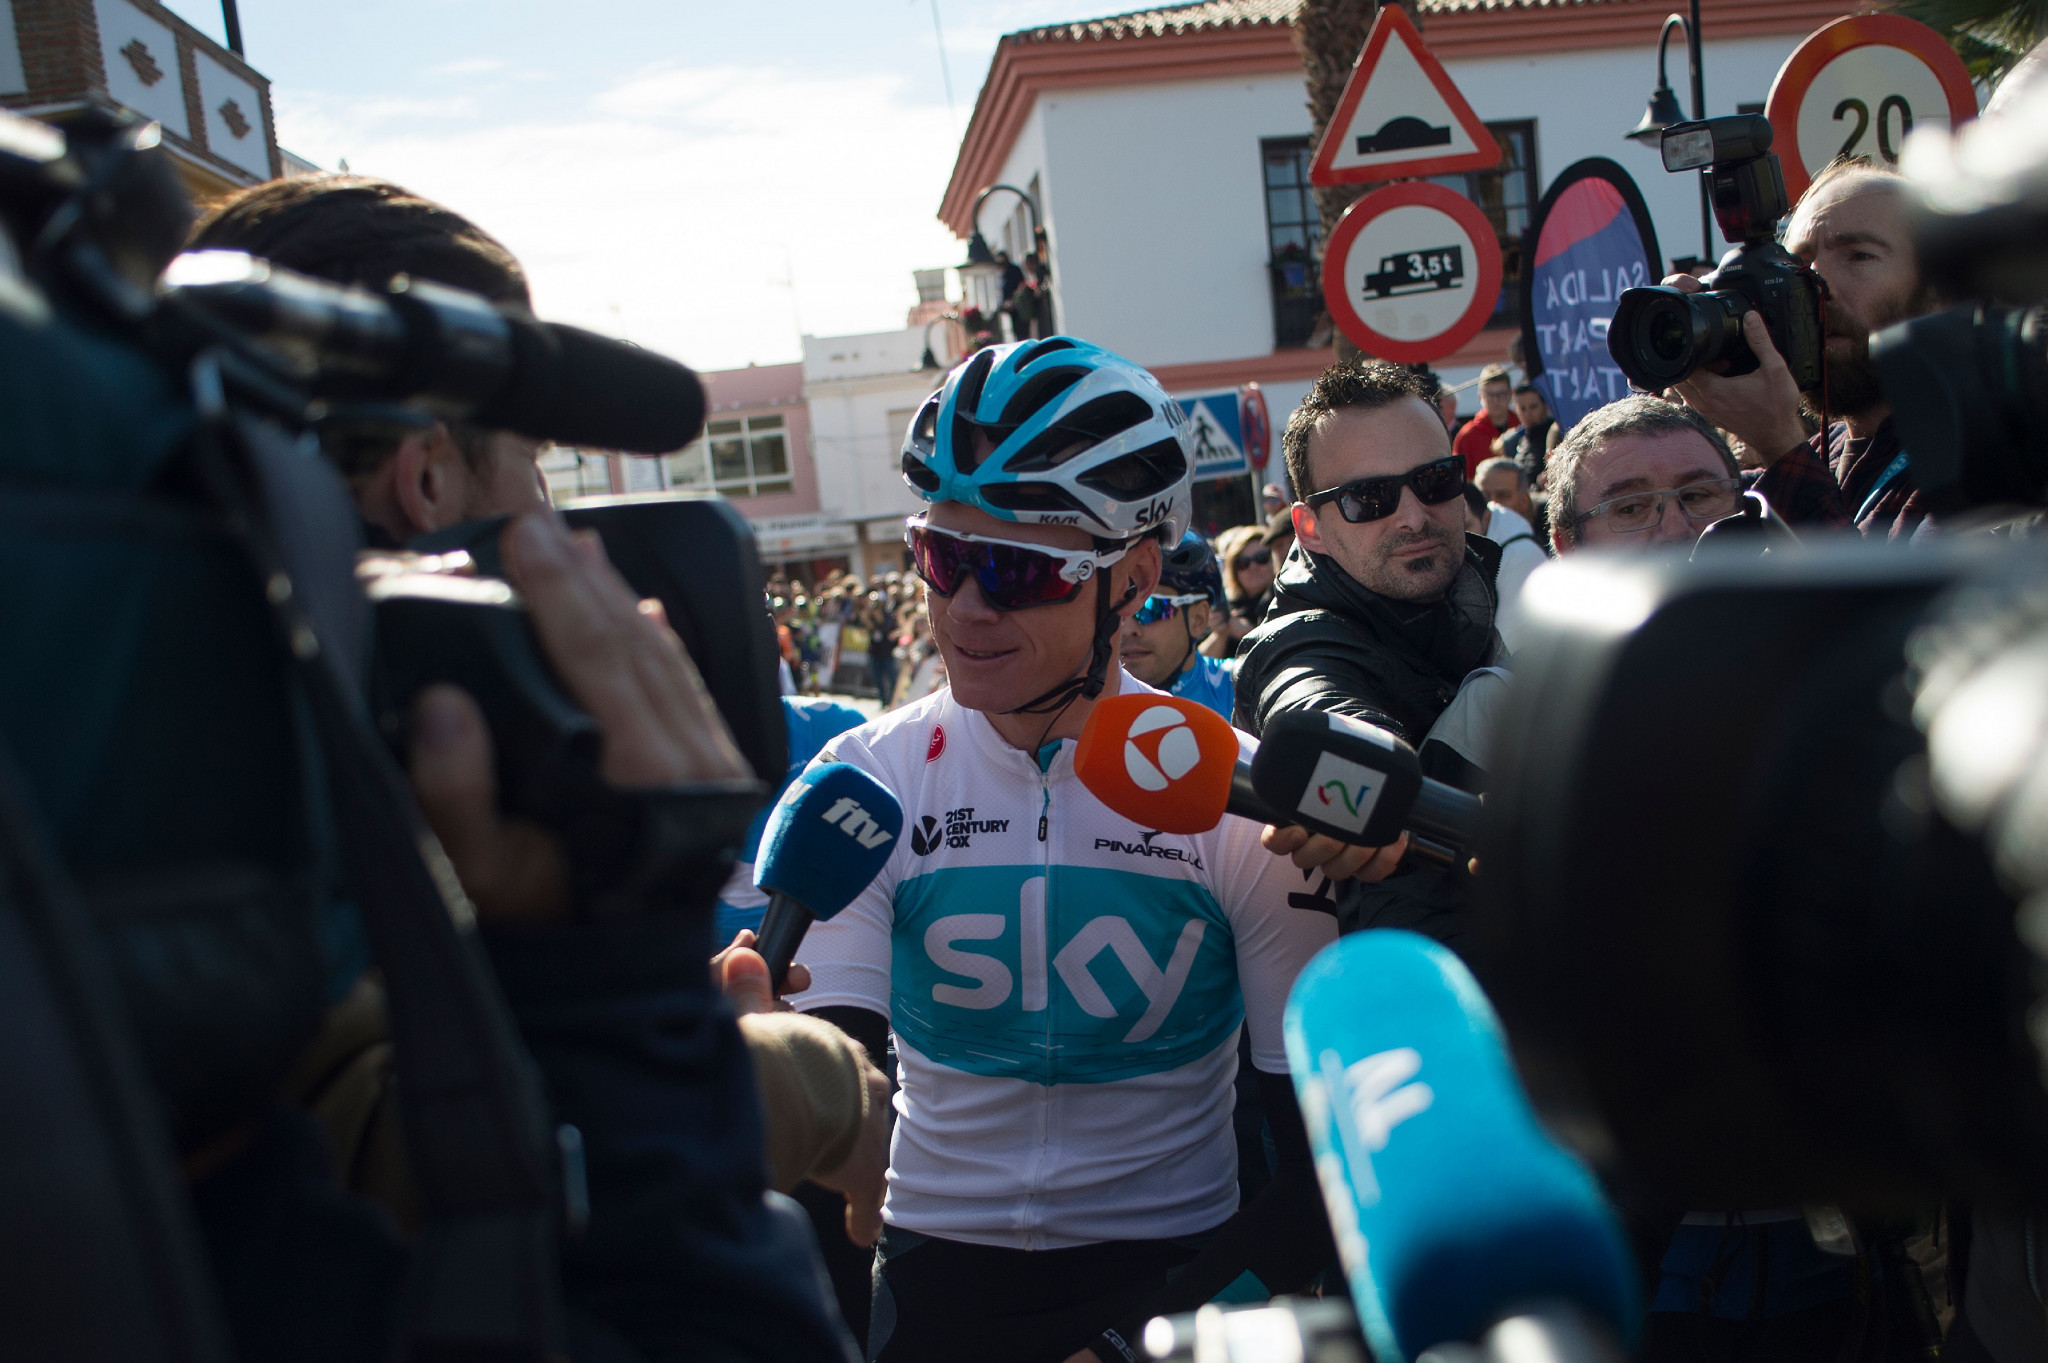 Britain's Chris Froome has continued to face questions about his salbutamol case ©Getty Images